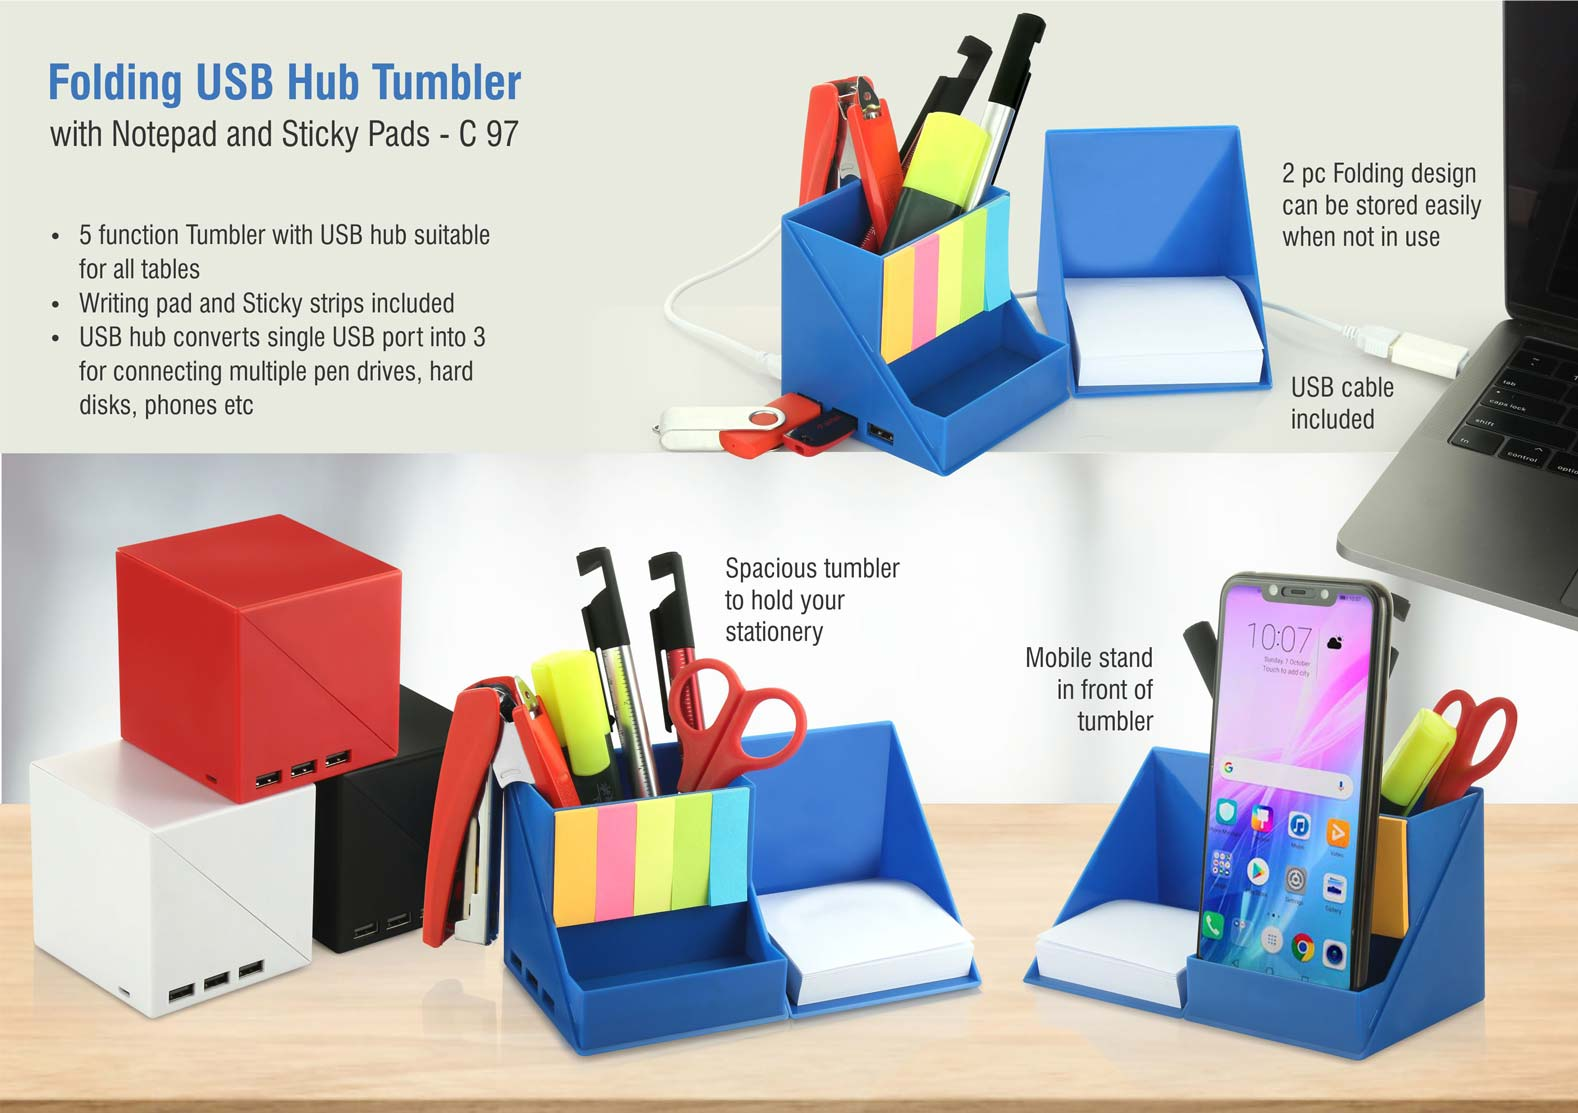 C97 - Folding USB hub tumbler with notepad and sticky pads | 3 USB ports